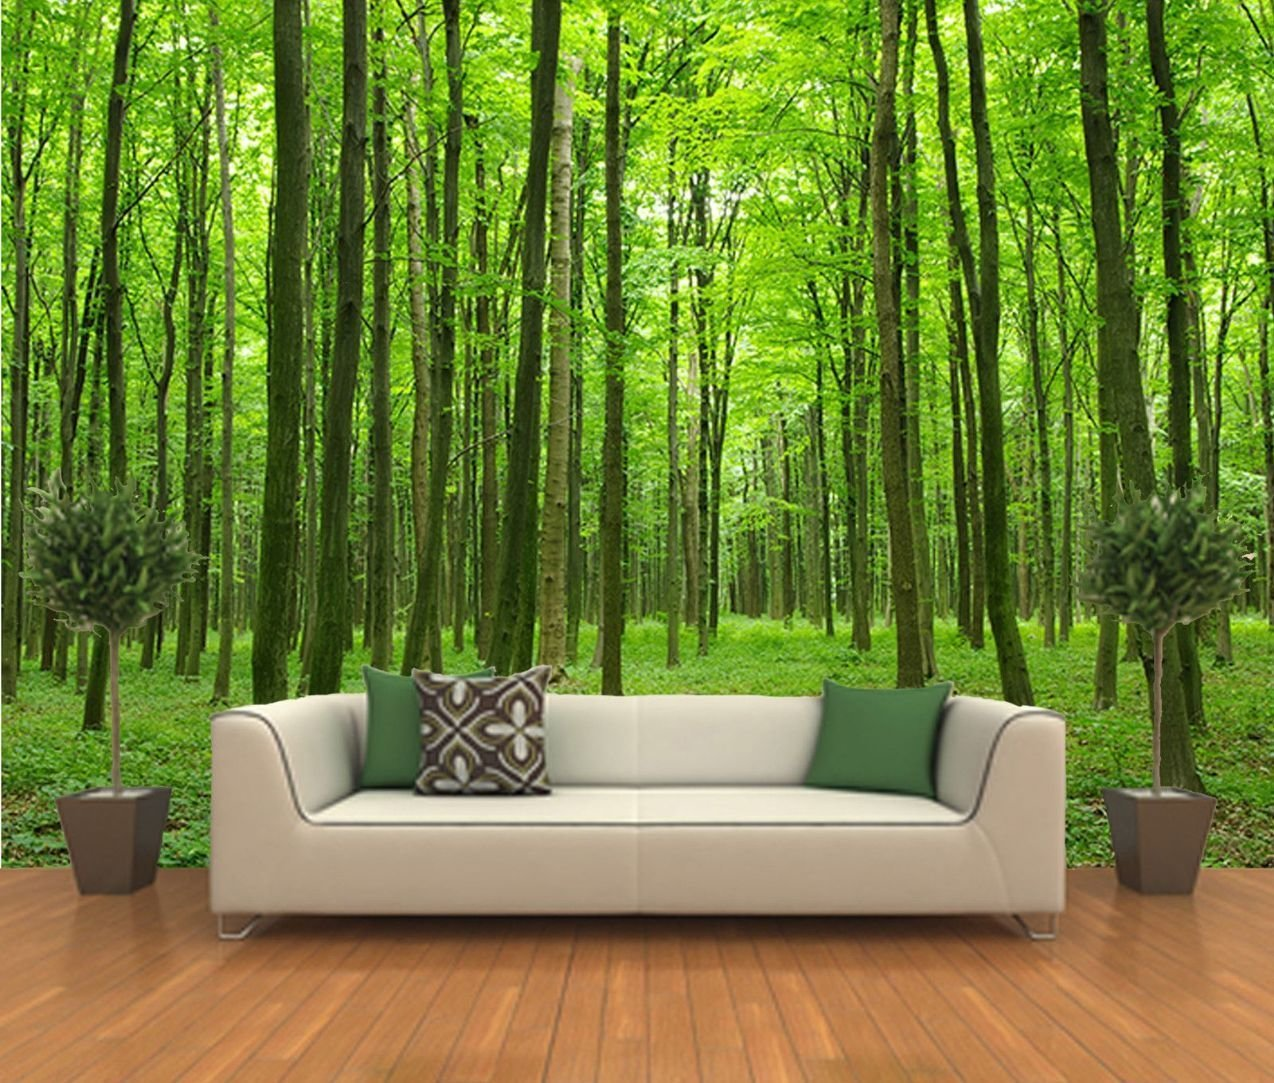 Best Peel And Stick Photo Wall Mural Decor Wallpapers Forest With Pictures